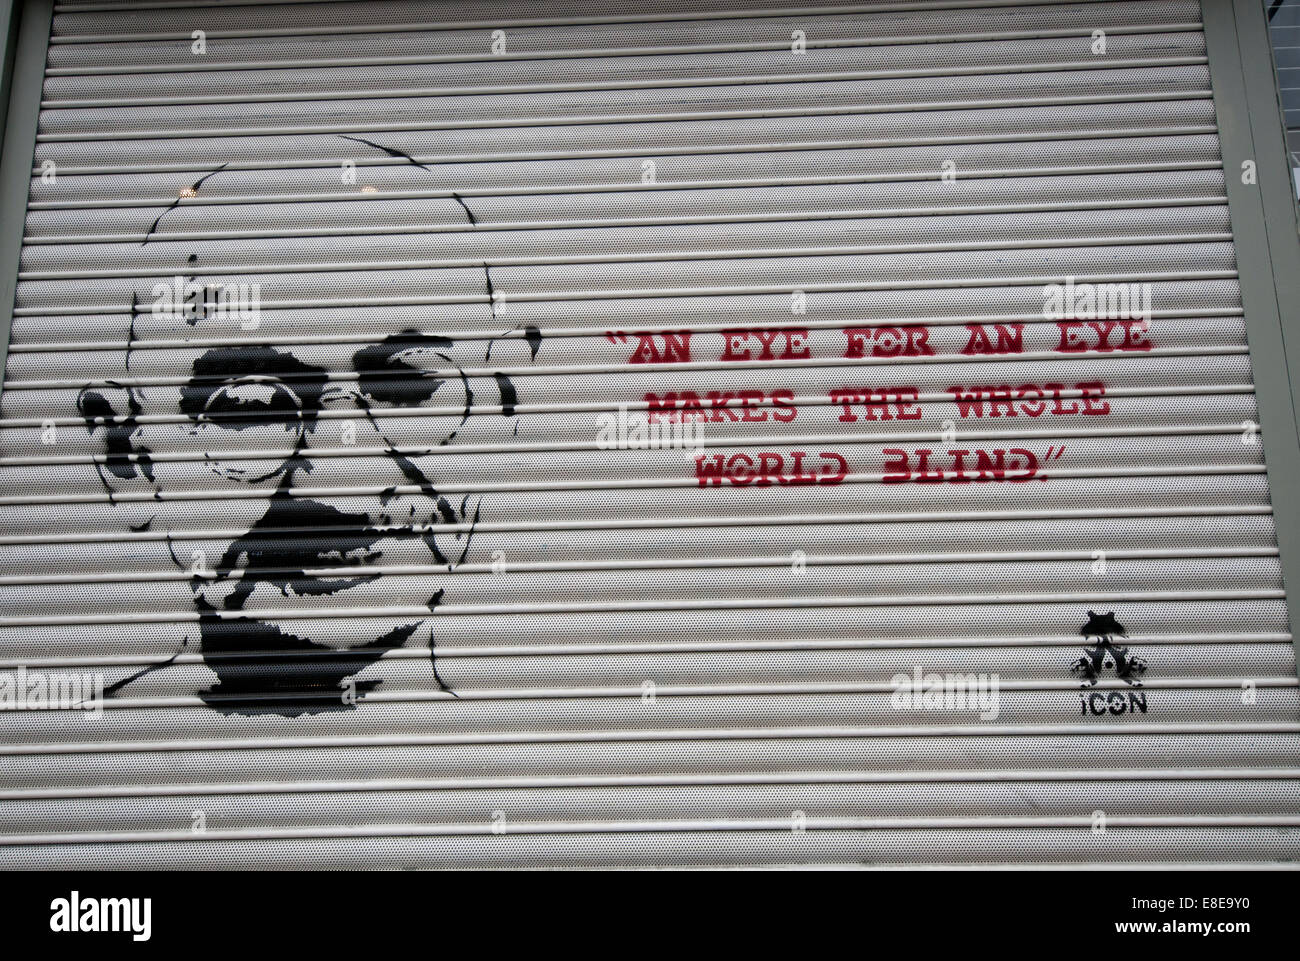 Quote from Gandhi 'An eye for an eye makes the whole world blind' graffitied on wall - Stock Image